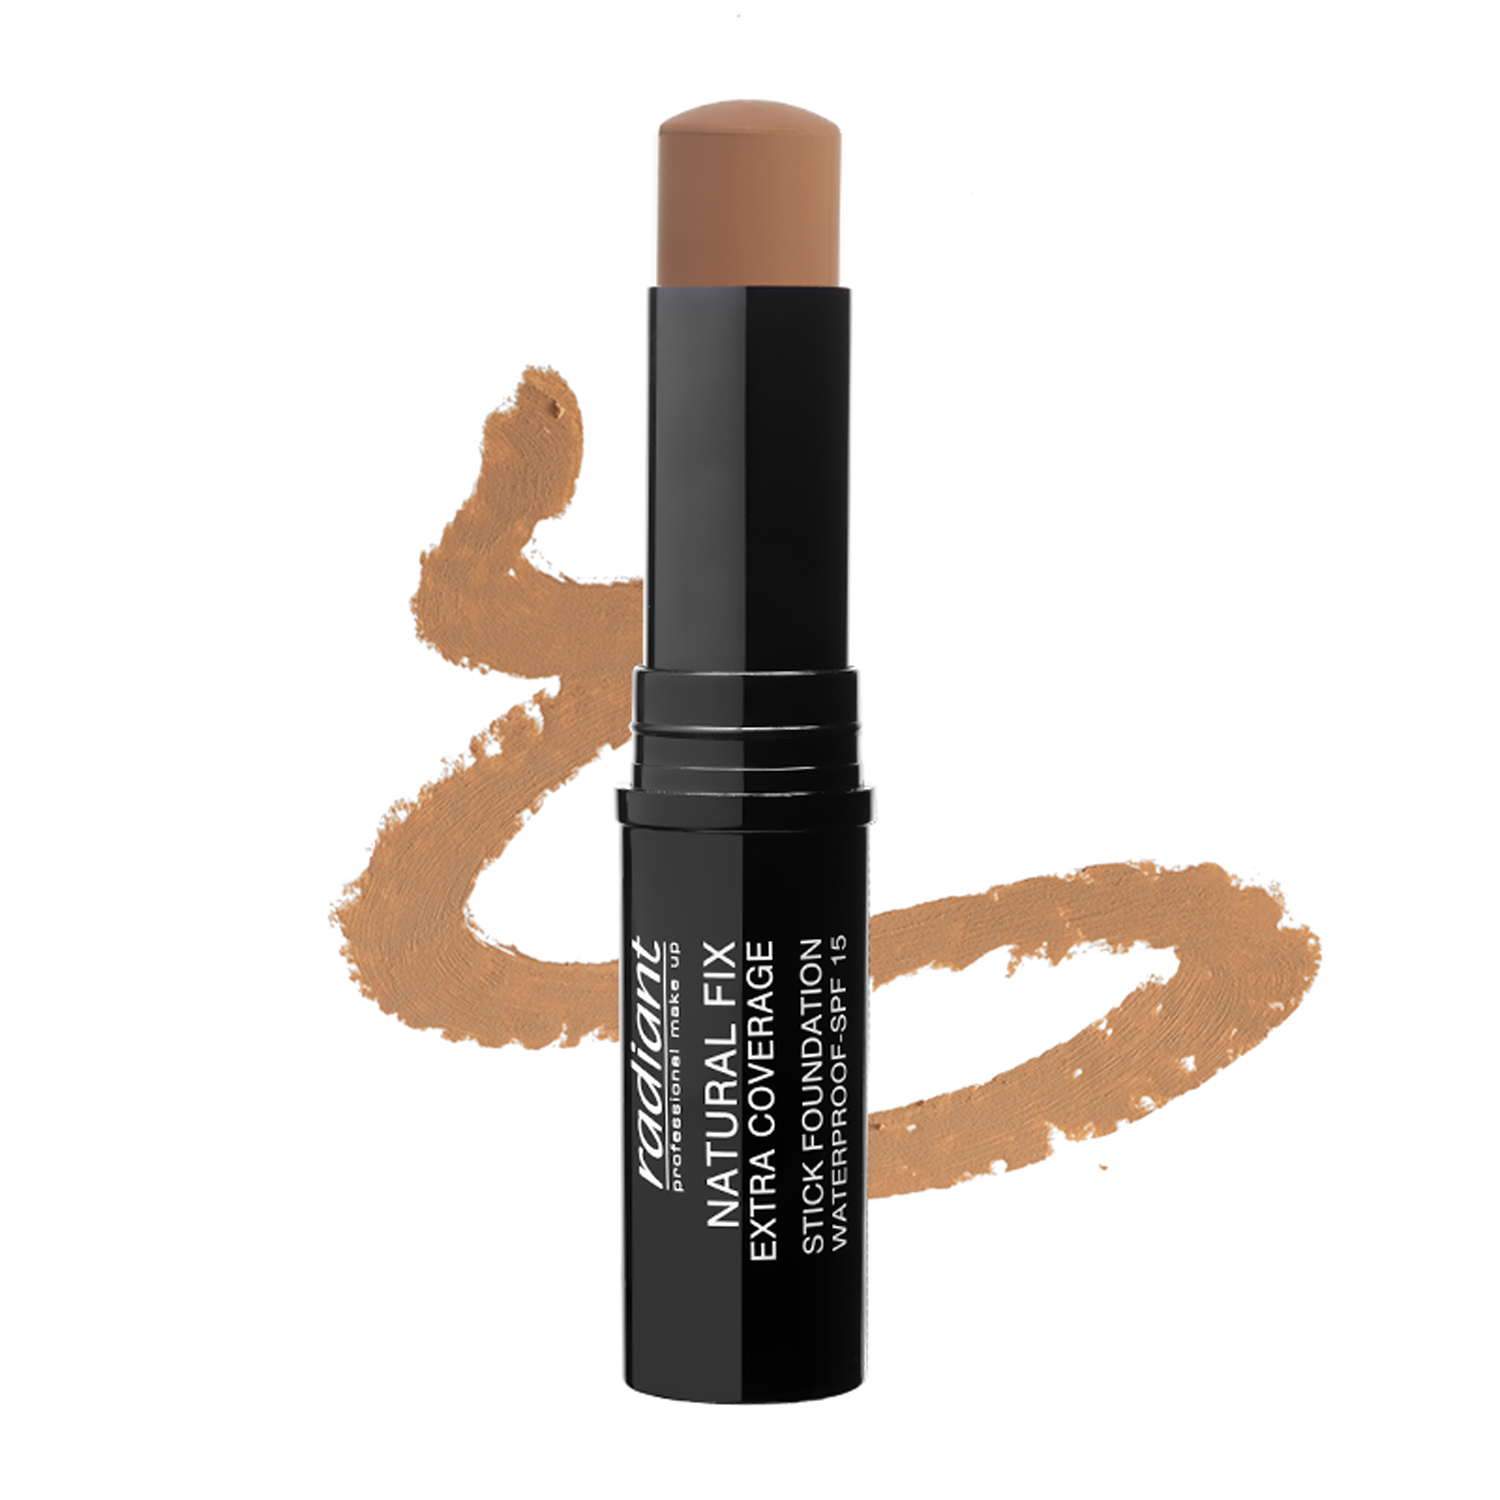 NATURAL FIX EXTRA COVERAGE STICK FOUNDATION  WATERPROOF SPF 15 (05 GINGER)